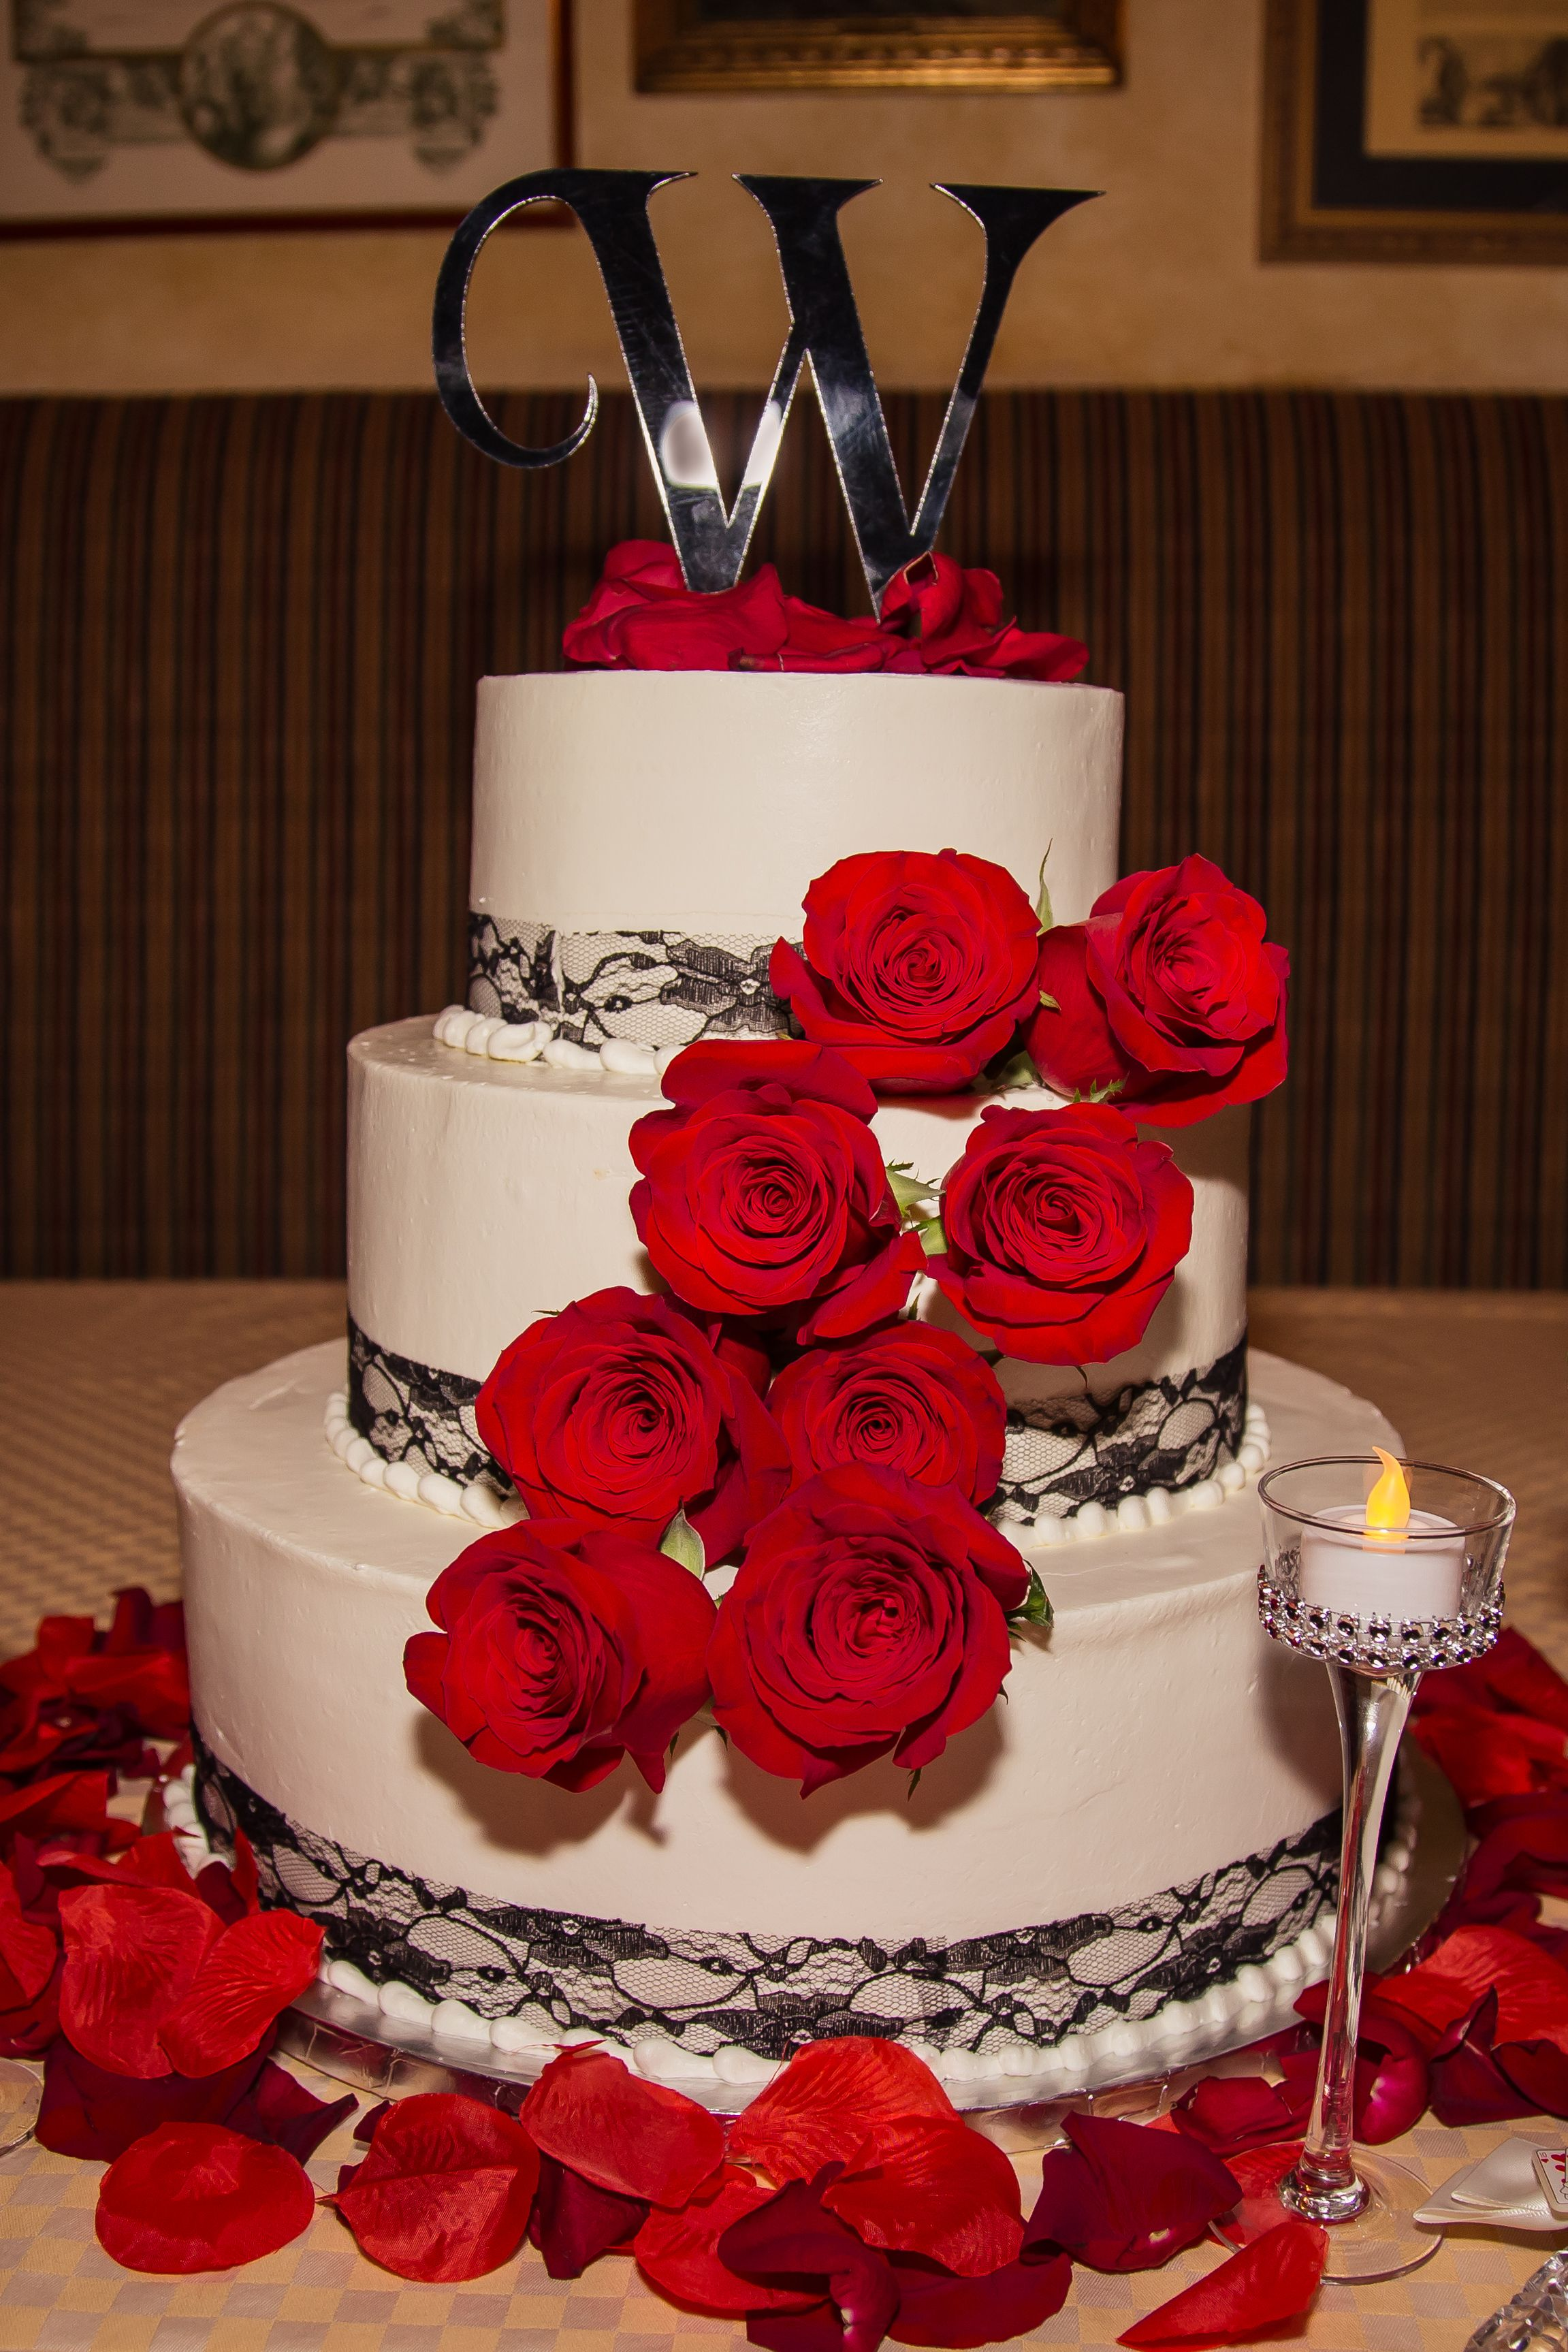 Our Red And Black Wedding Cake With Red Roses And Black